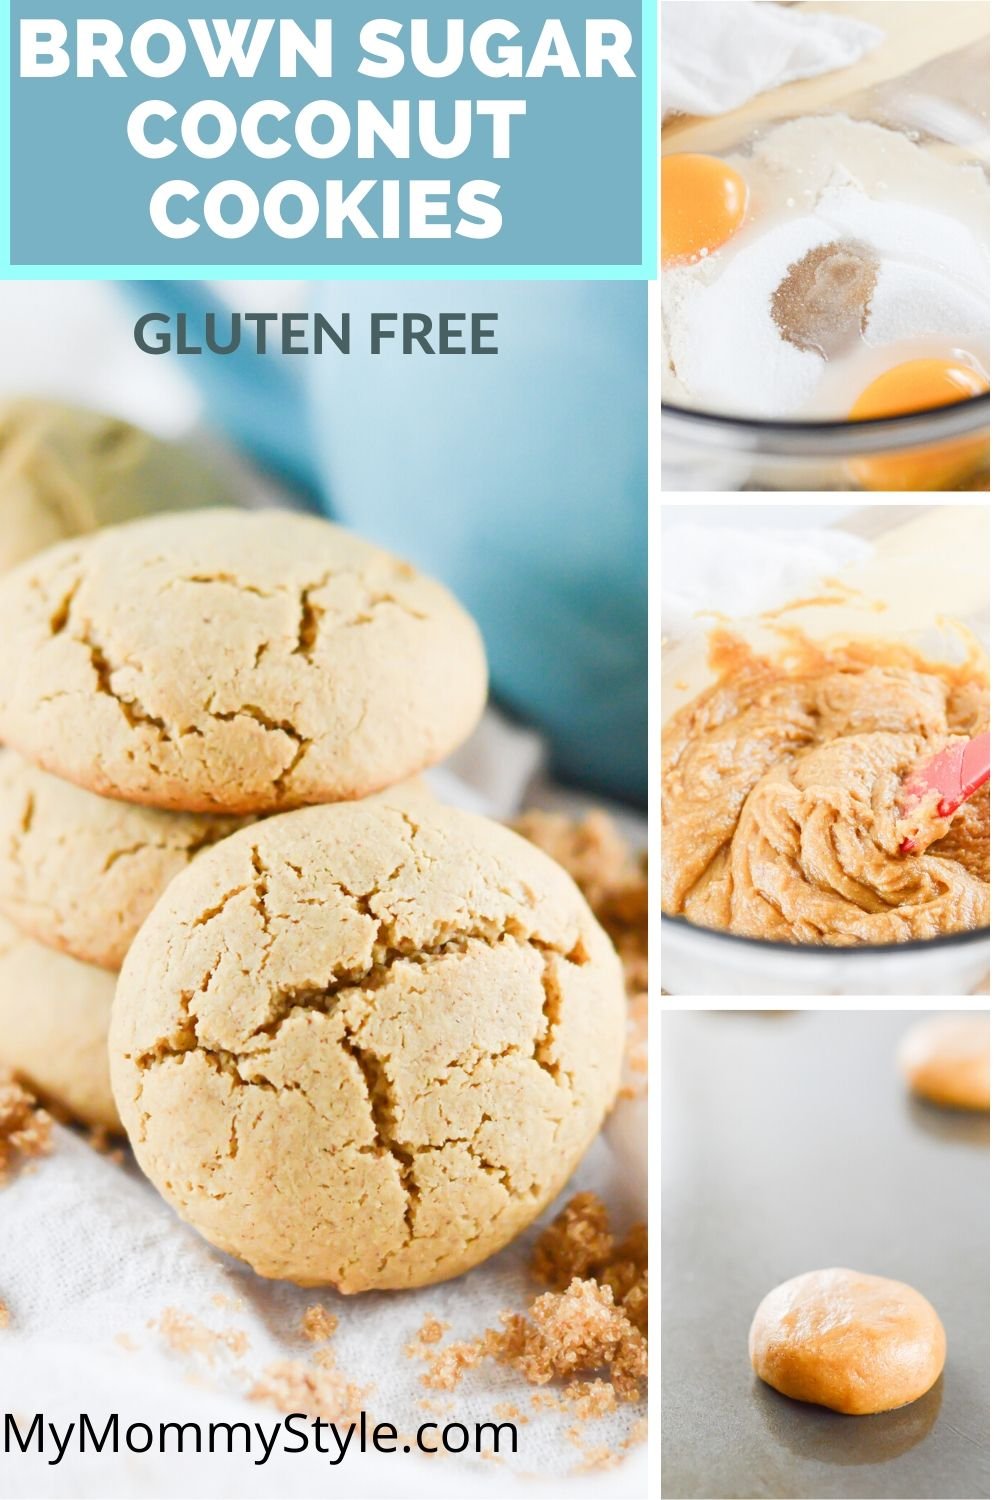 These gluten free coconut flour cookies are so delicious, simple, and chewy! Saving to favorites! via @mymommystyle